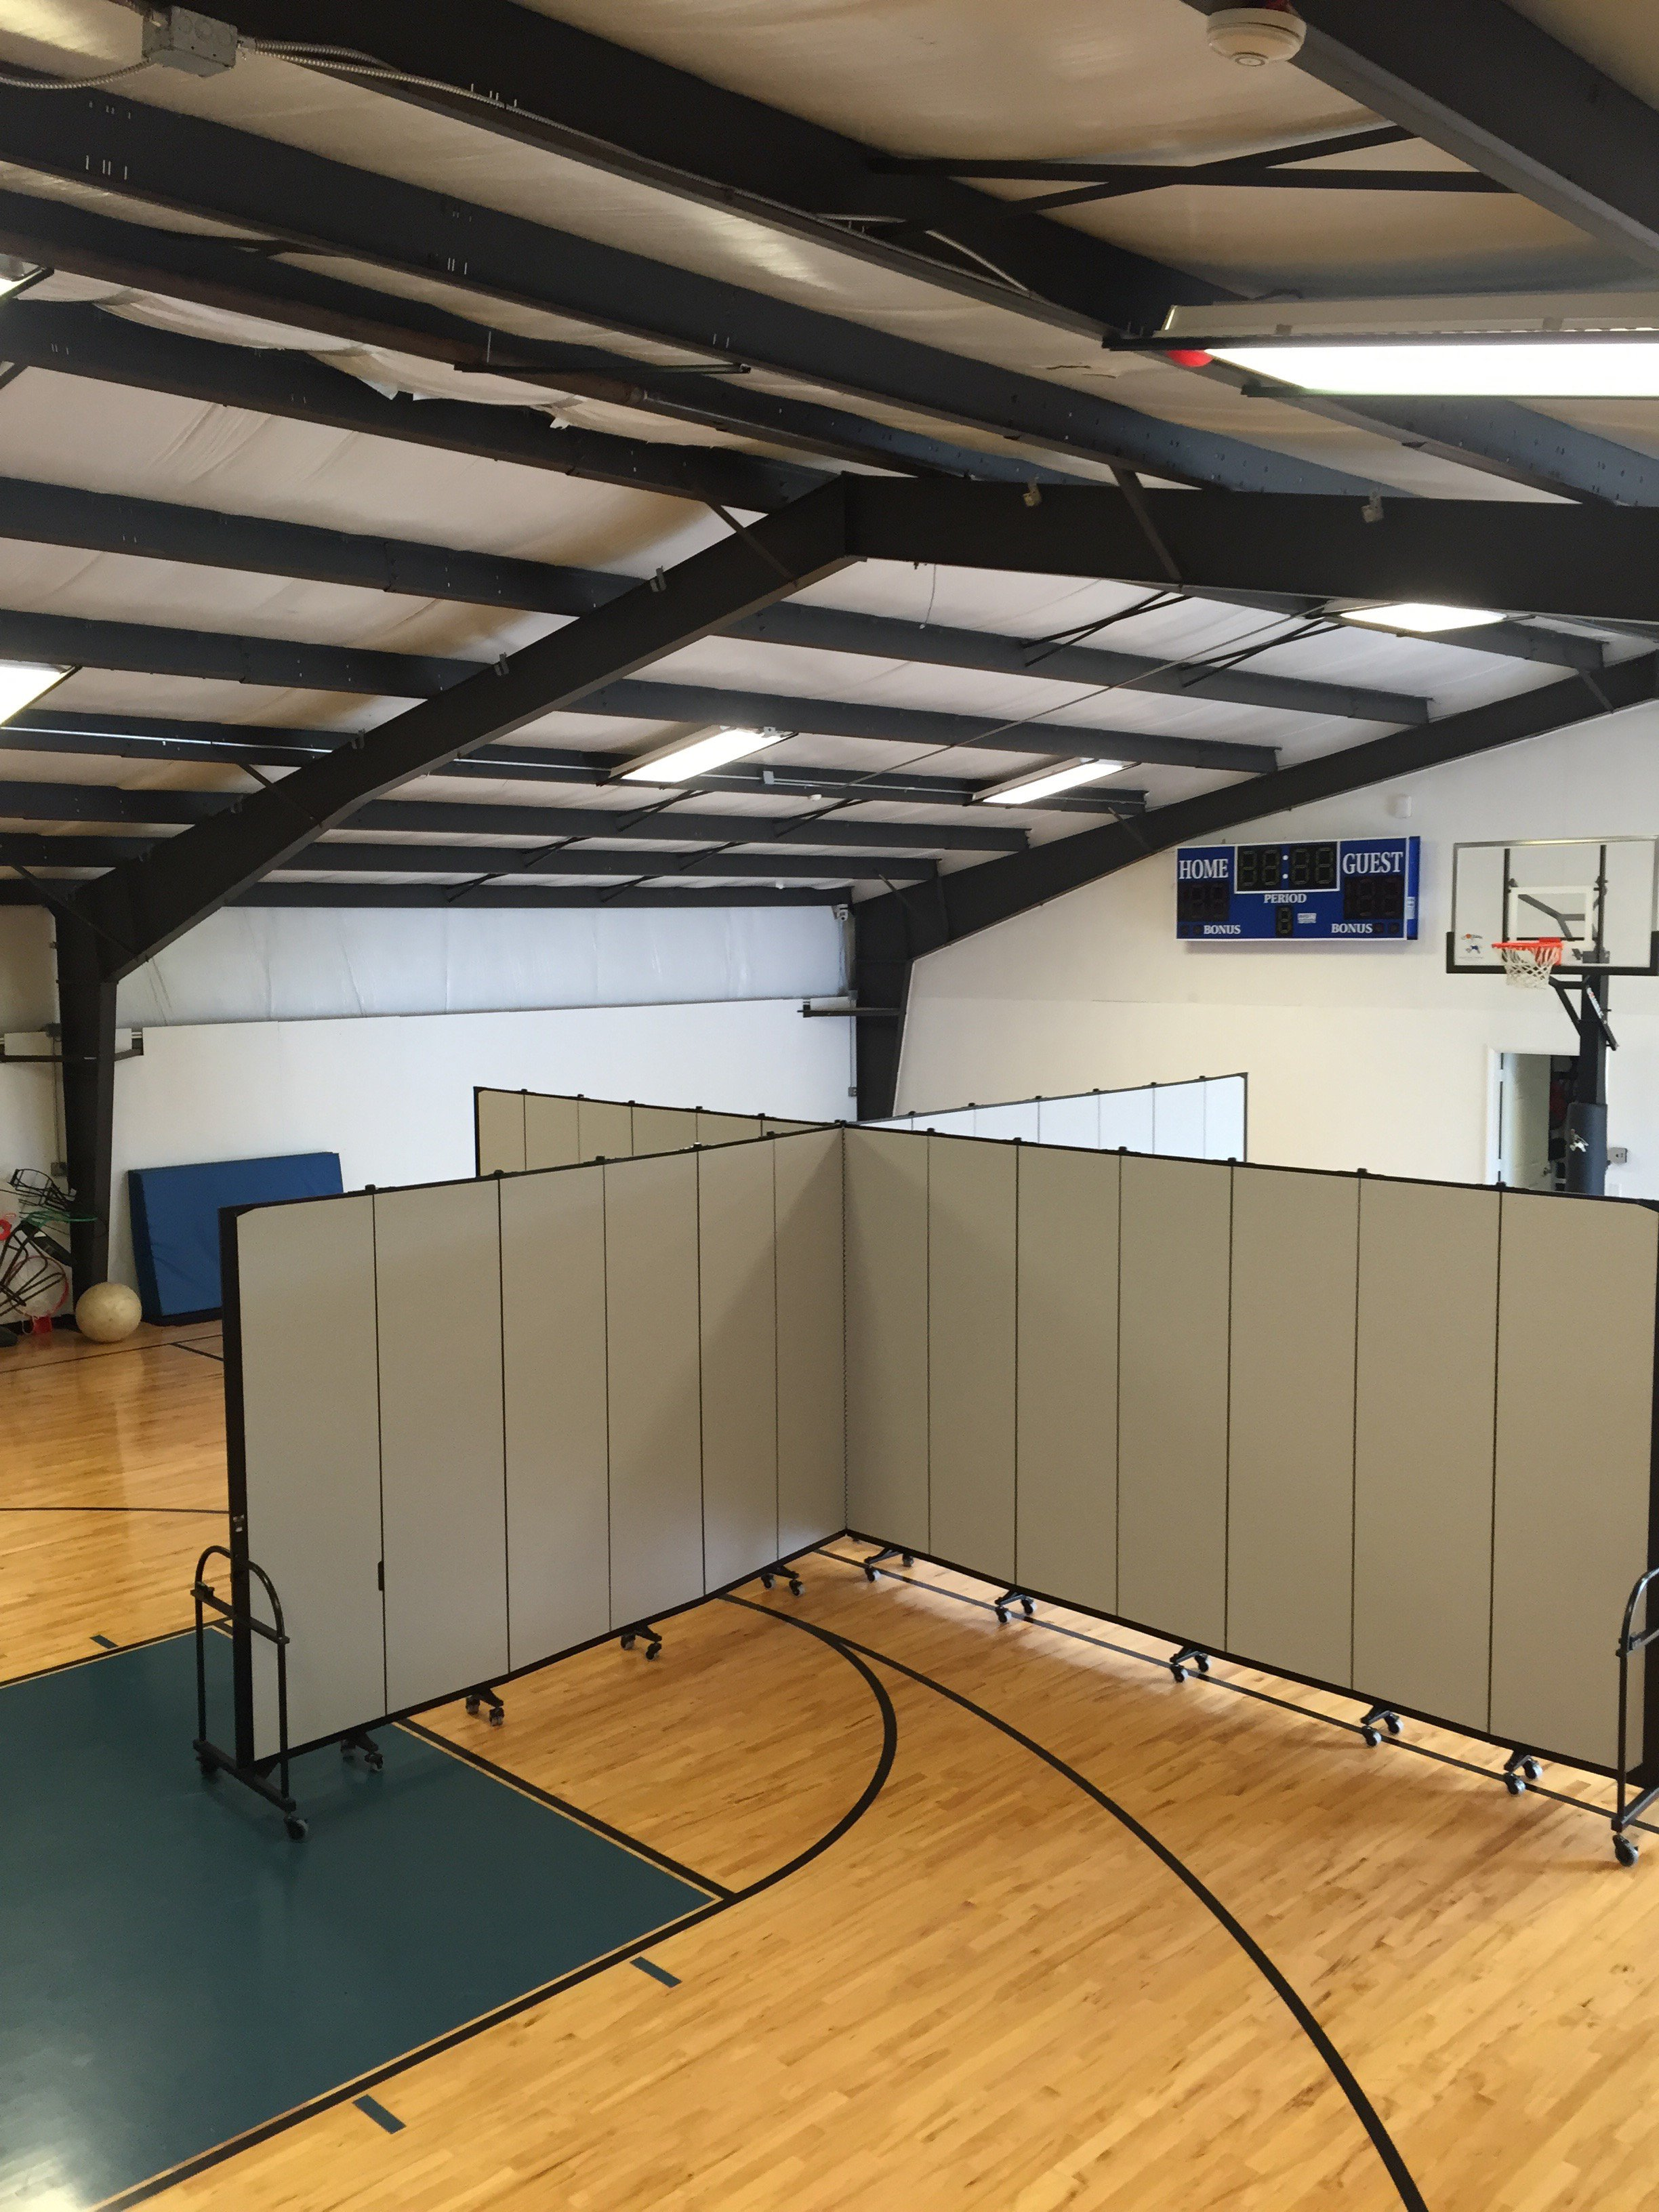 Two room dividers are connected to create 4 rooms in a gym